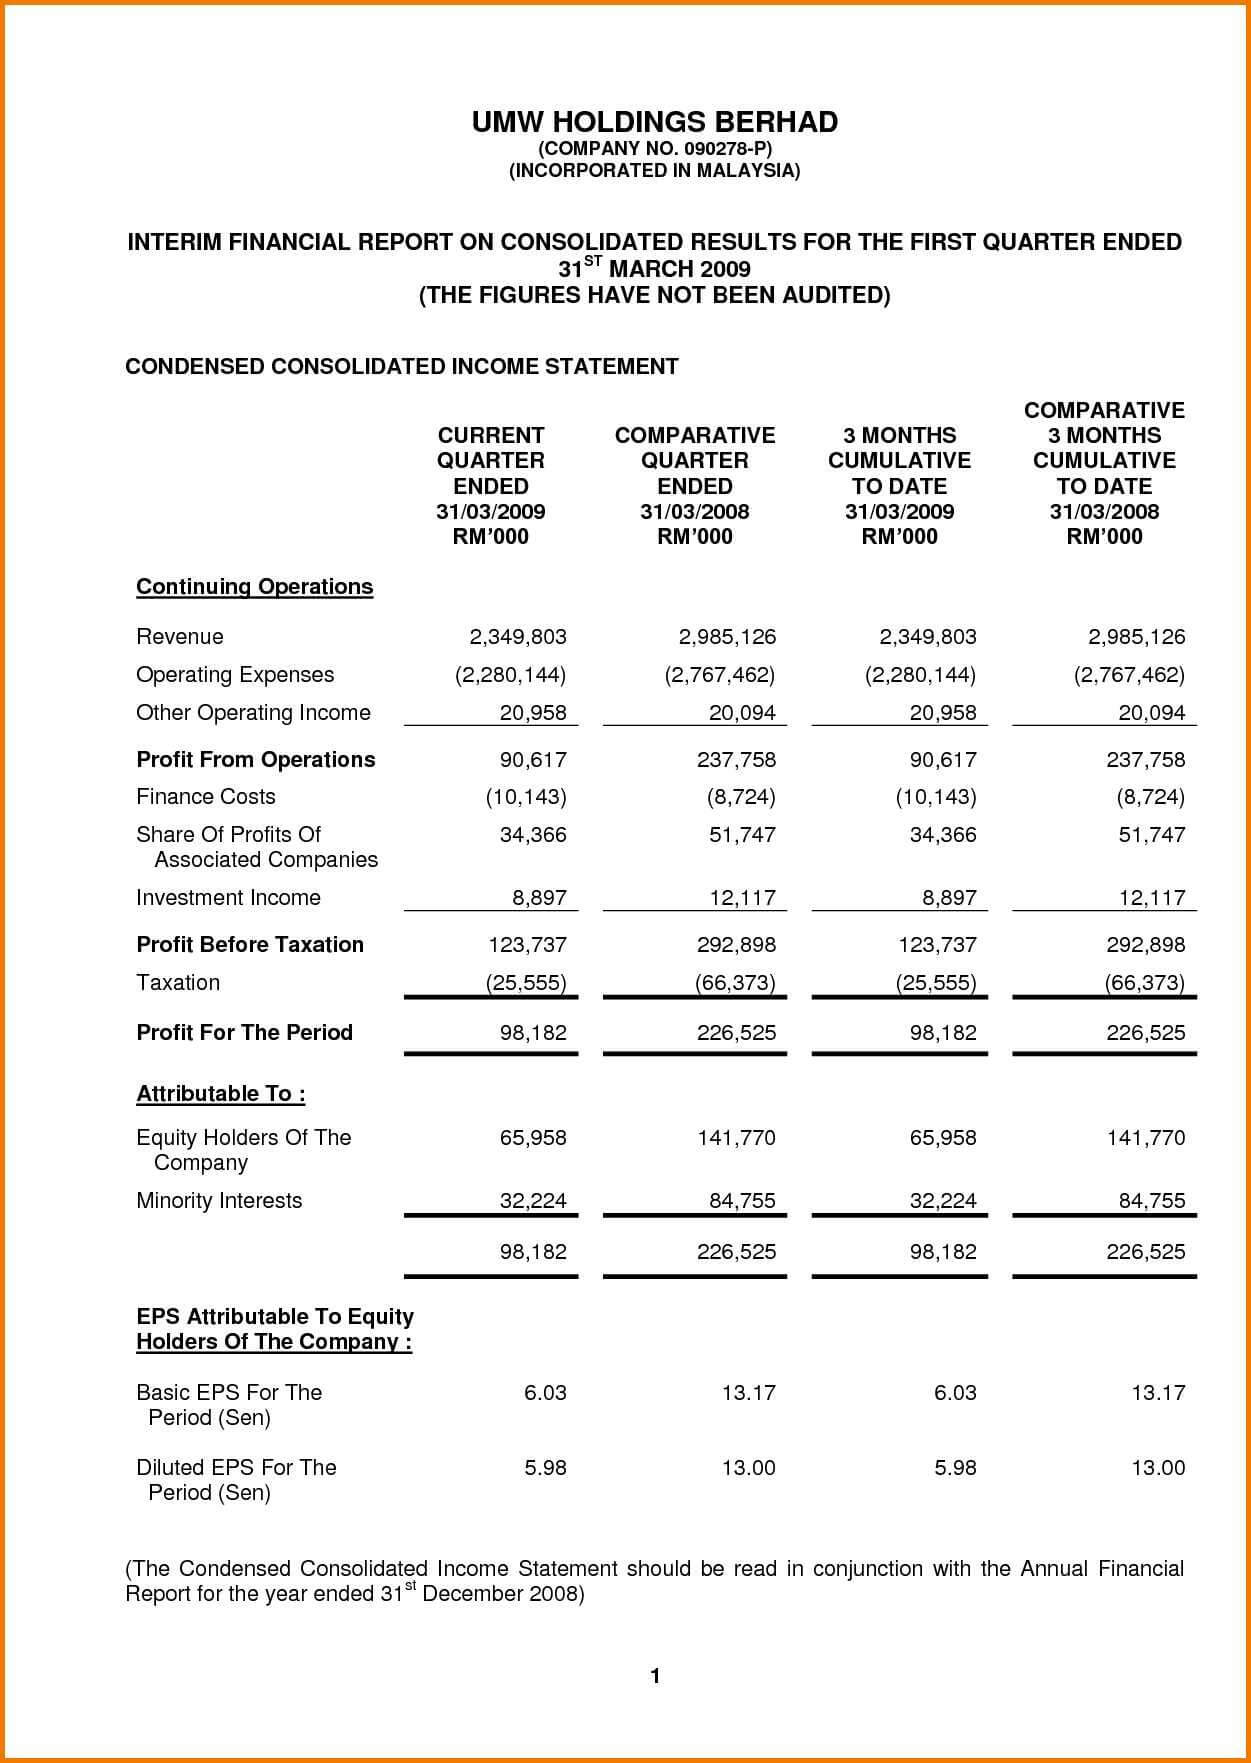 036 Simple Financial Statement Unique Template Ideas In Word with regard to Annual Financial Report Template Word